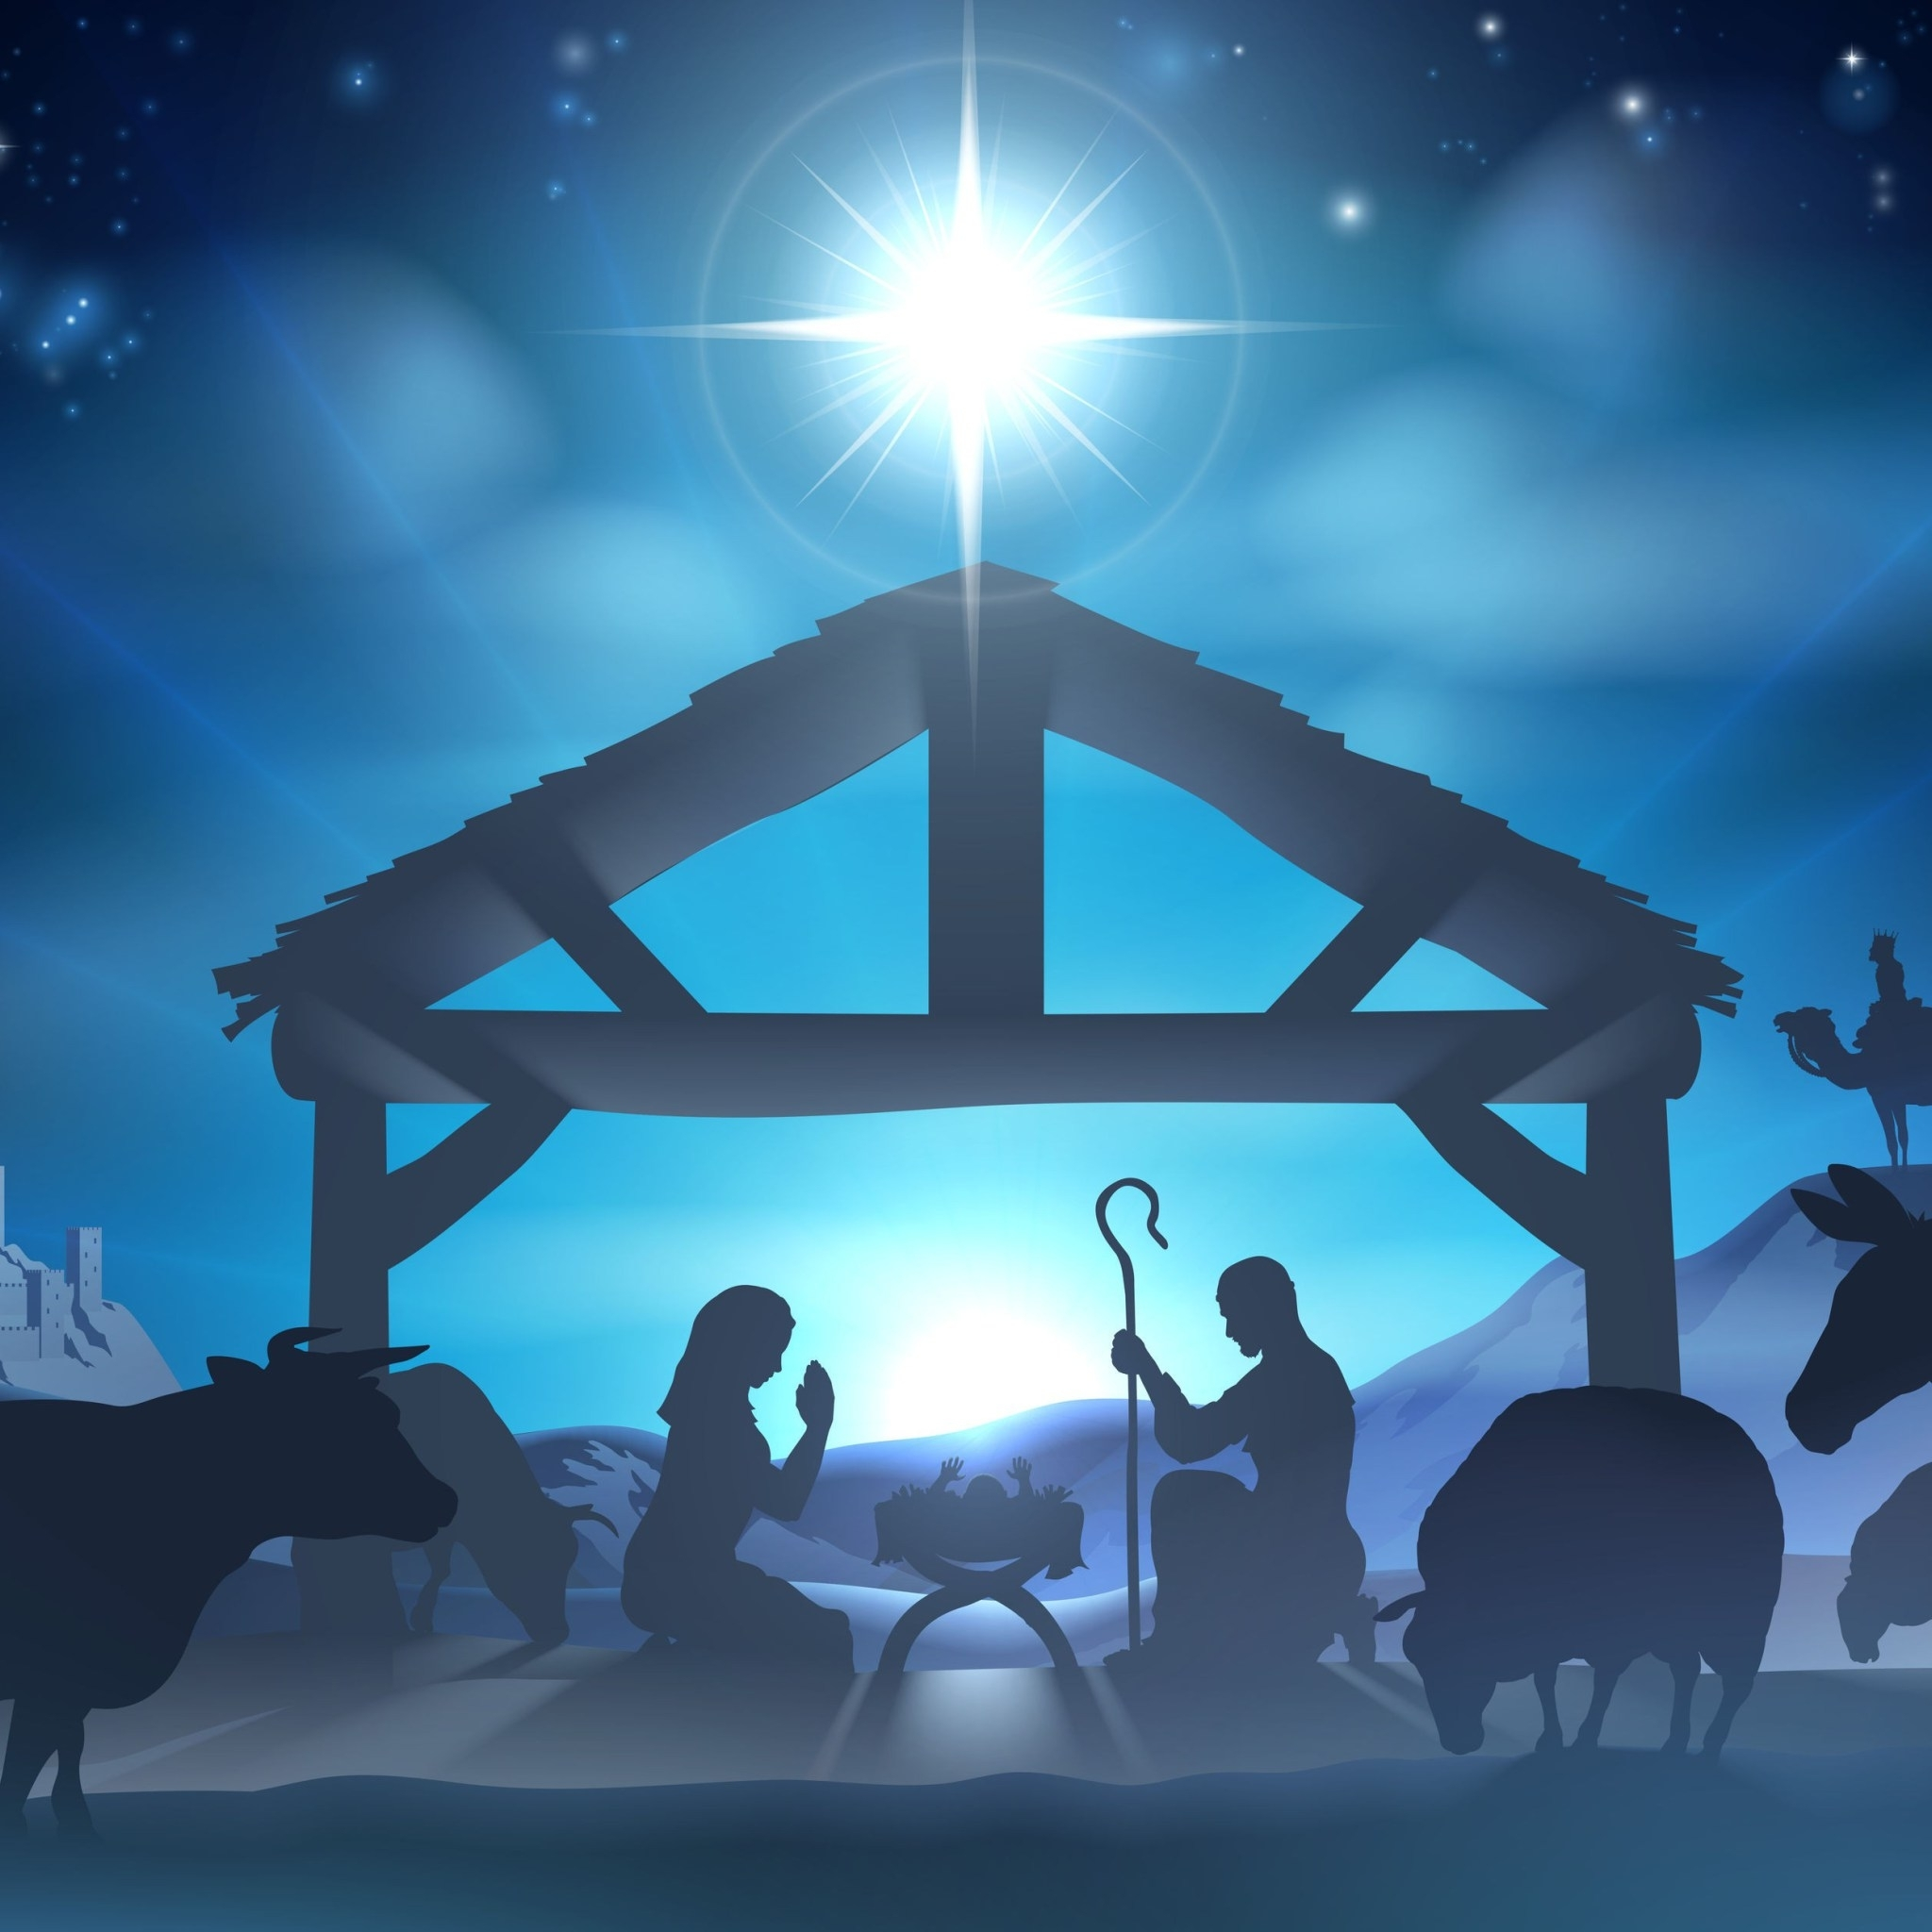 719 nativity scene wallpaper